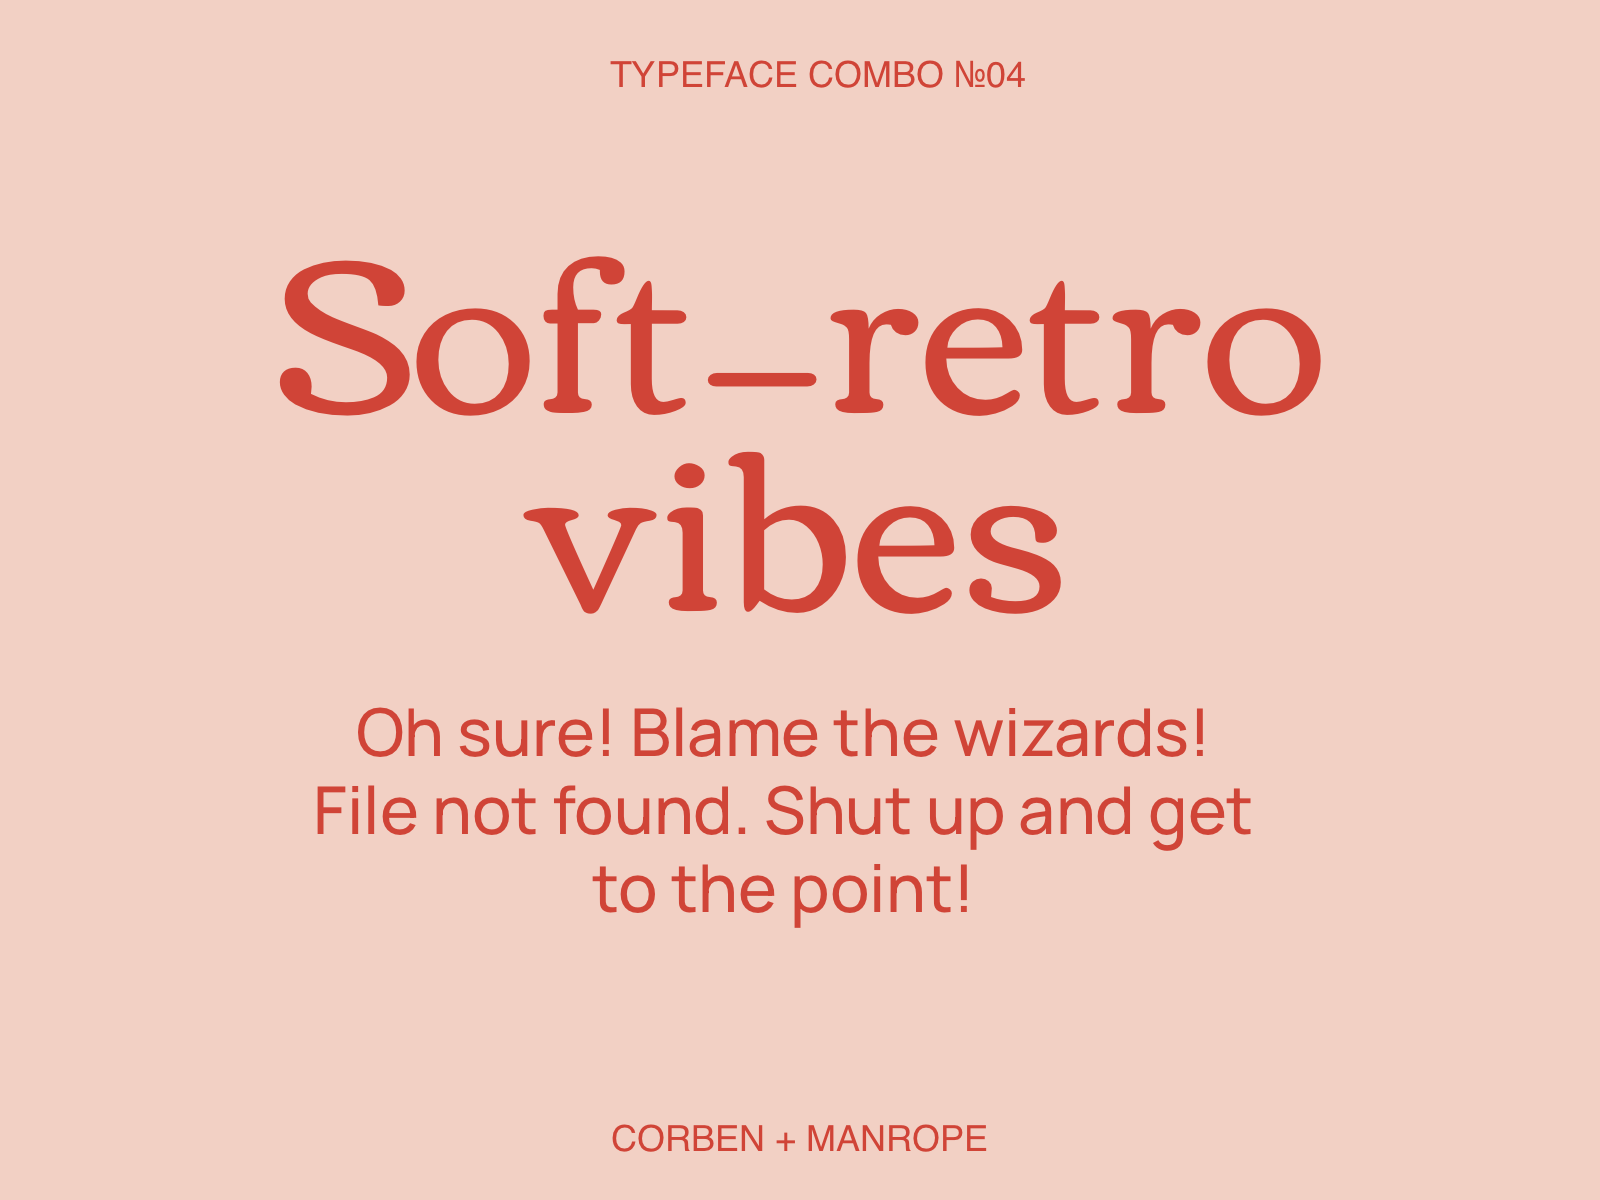 8 Expressive Free Font Combos For Your Next Design Curated By Davide Baratta Dribbble Design Blog